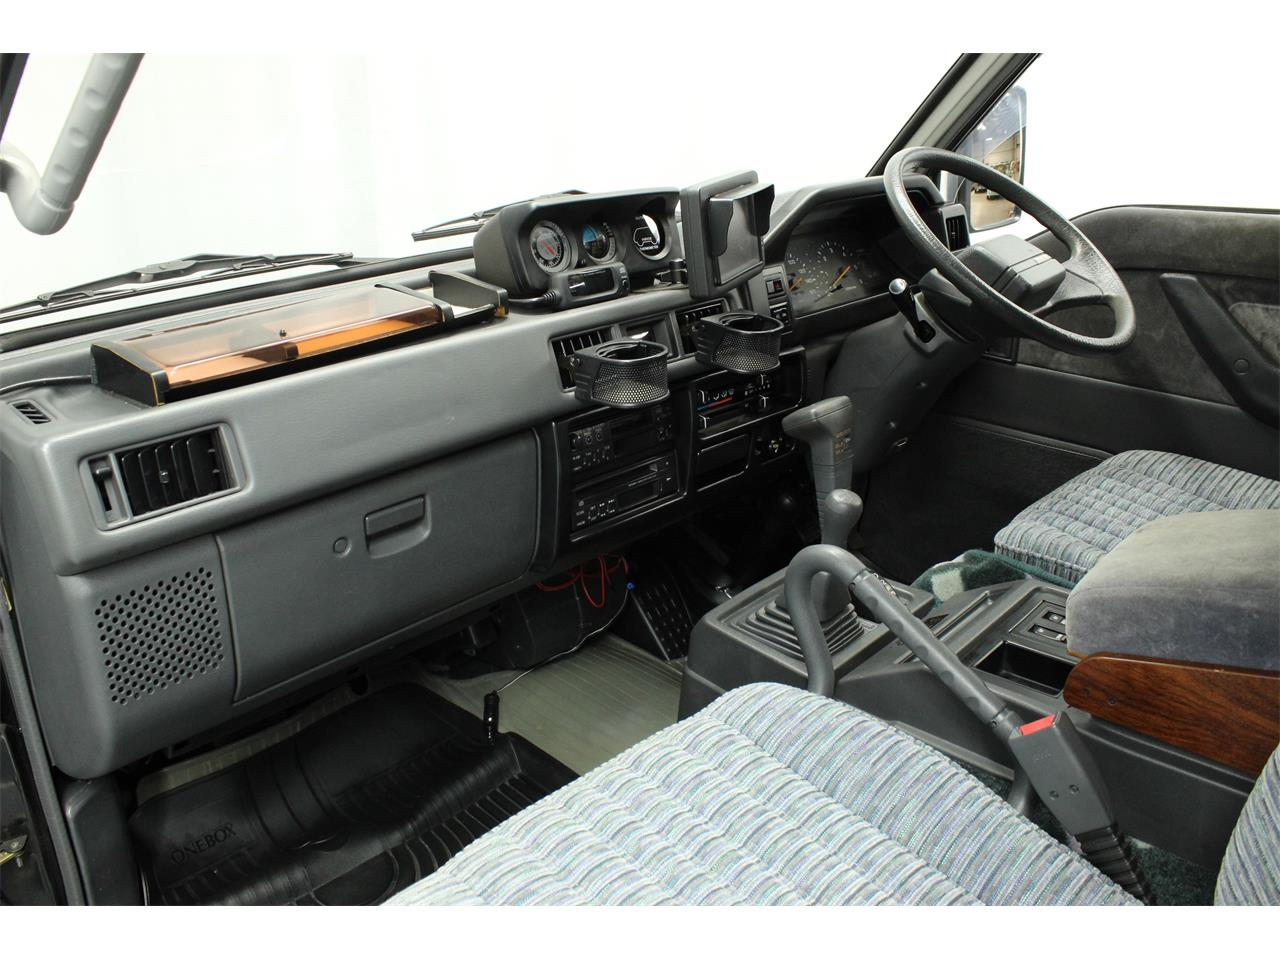 1992 Mitsubishi Delica for sale in Christiansburg, VA – photo 15